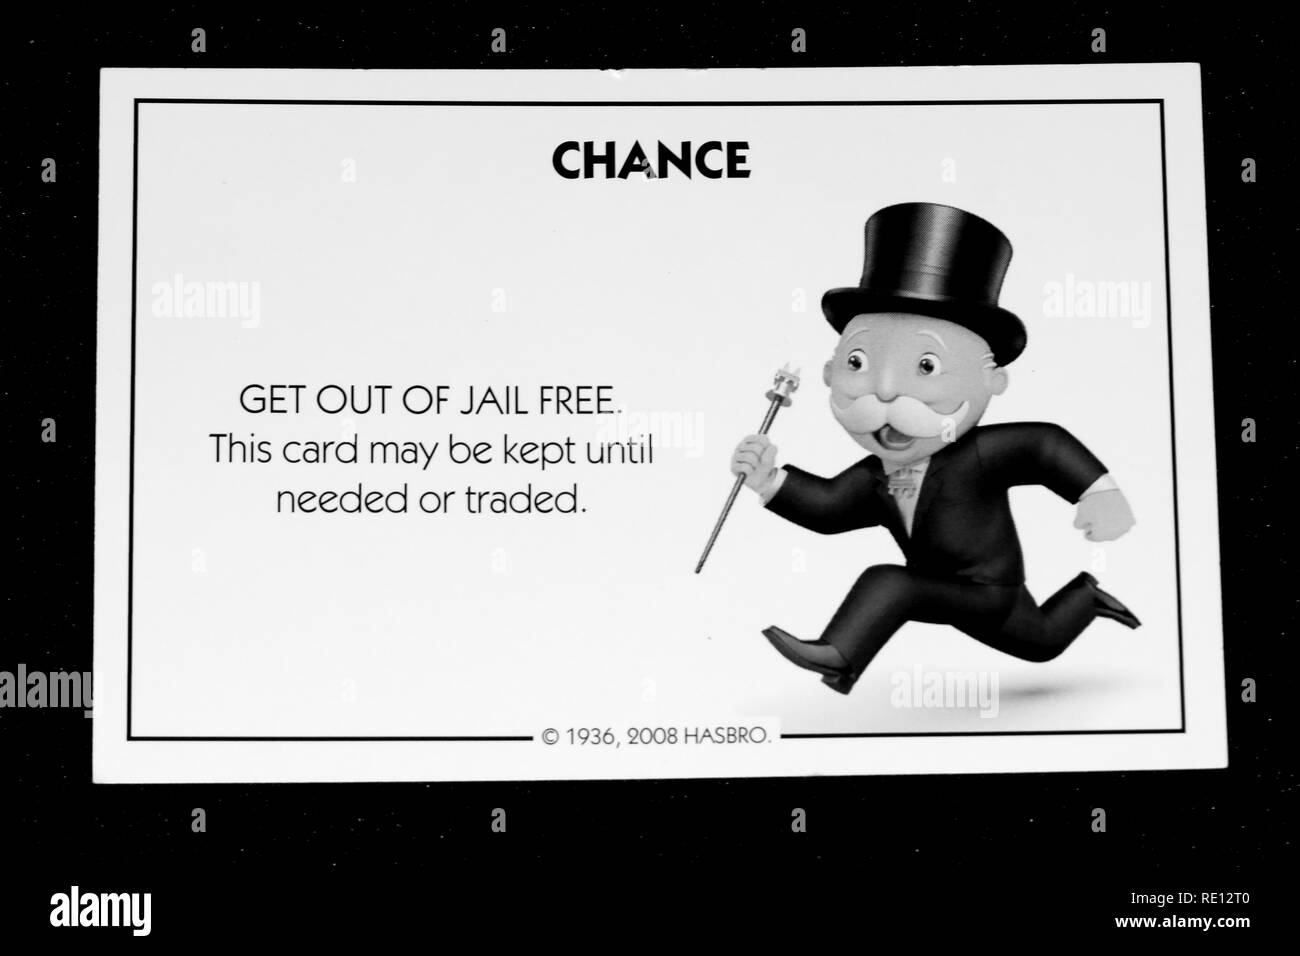 Monopoly Game How To Get Out Of Jail Get Out Of Jail Stock Photos Get Out Of Jail Stock